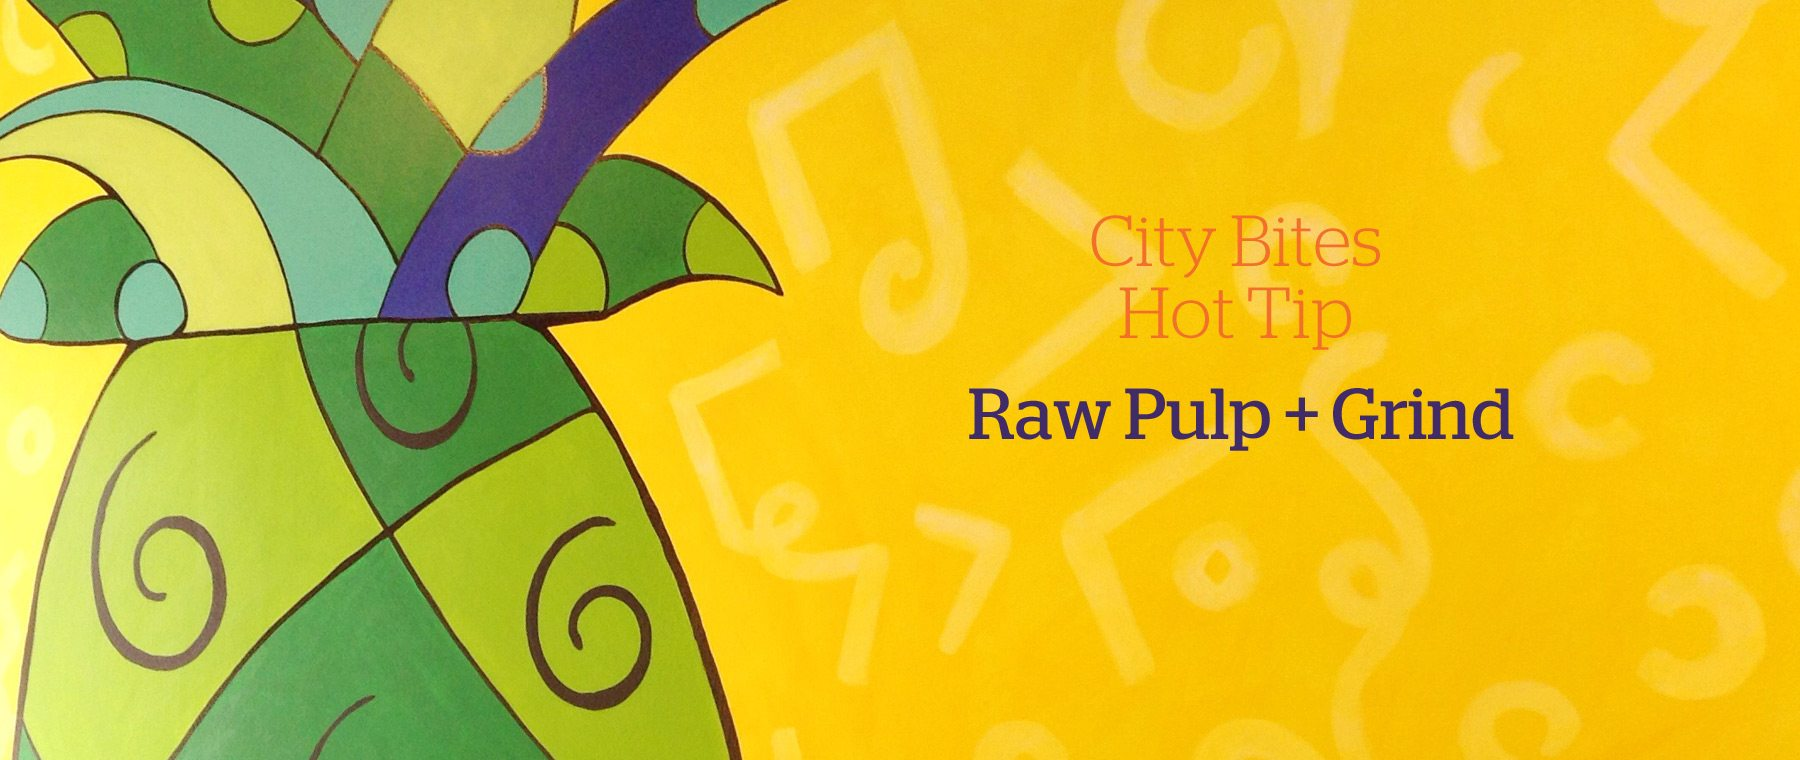 Now open! Raw Pulp + Grind